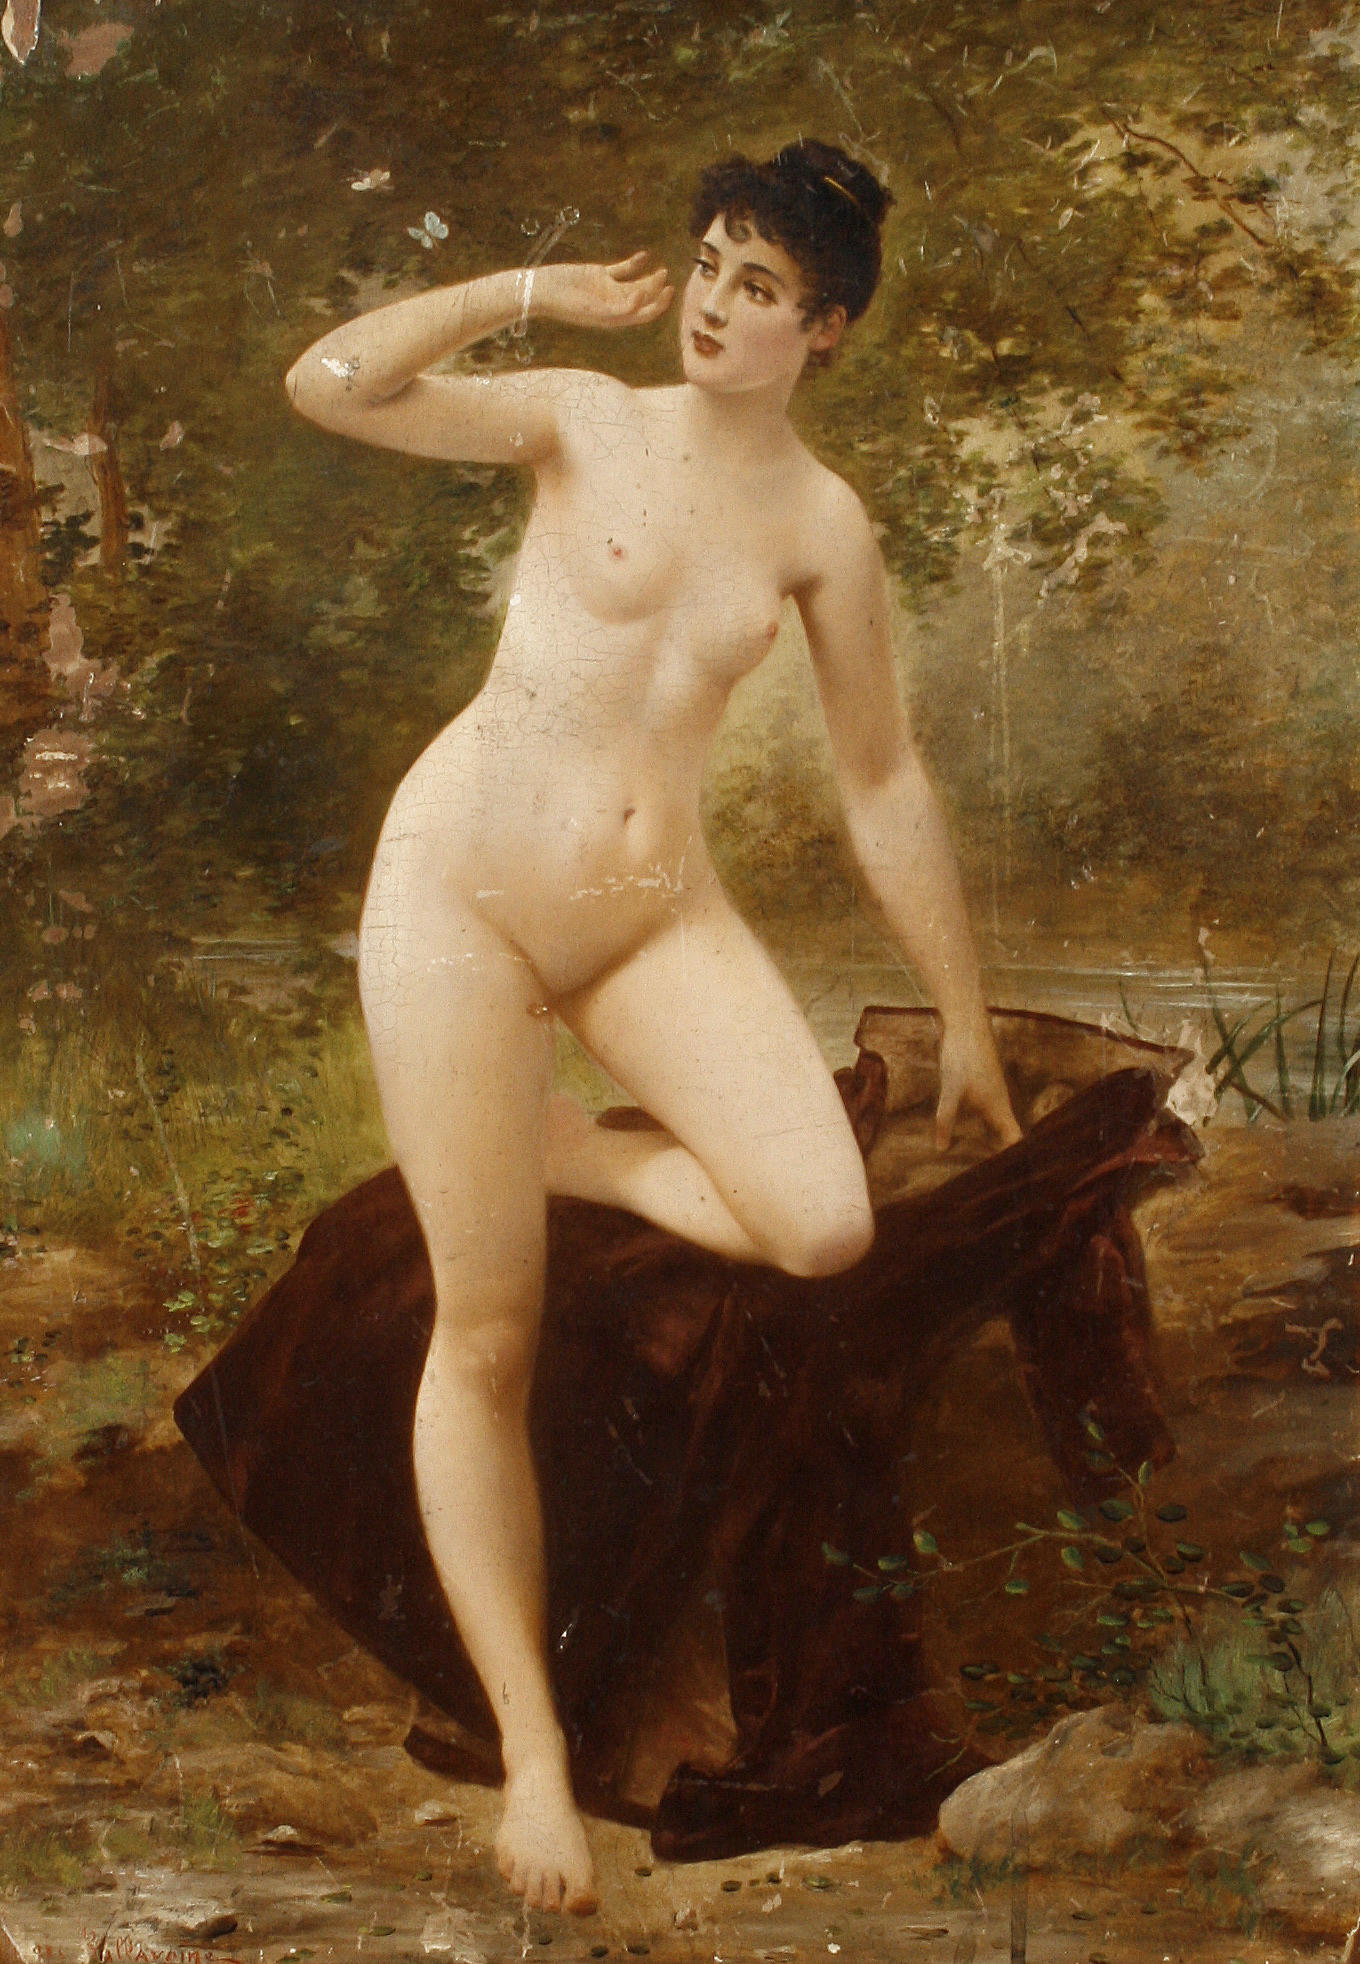 Nude by a river